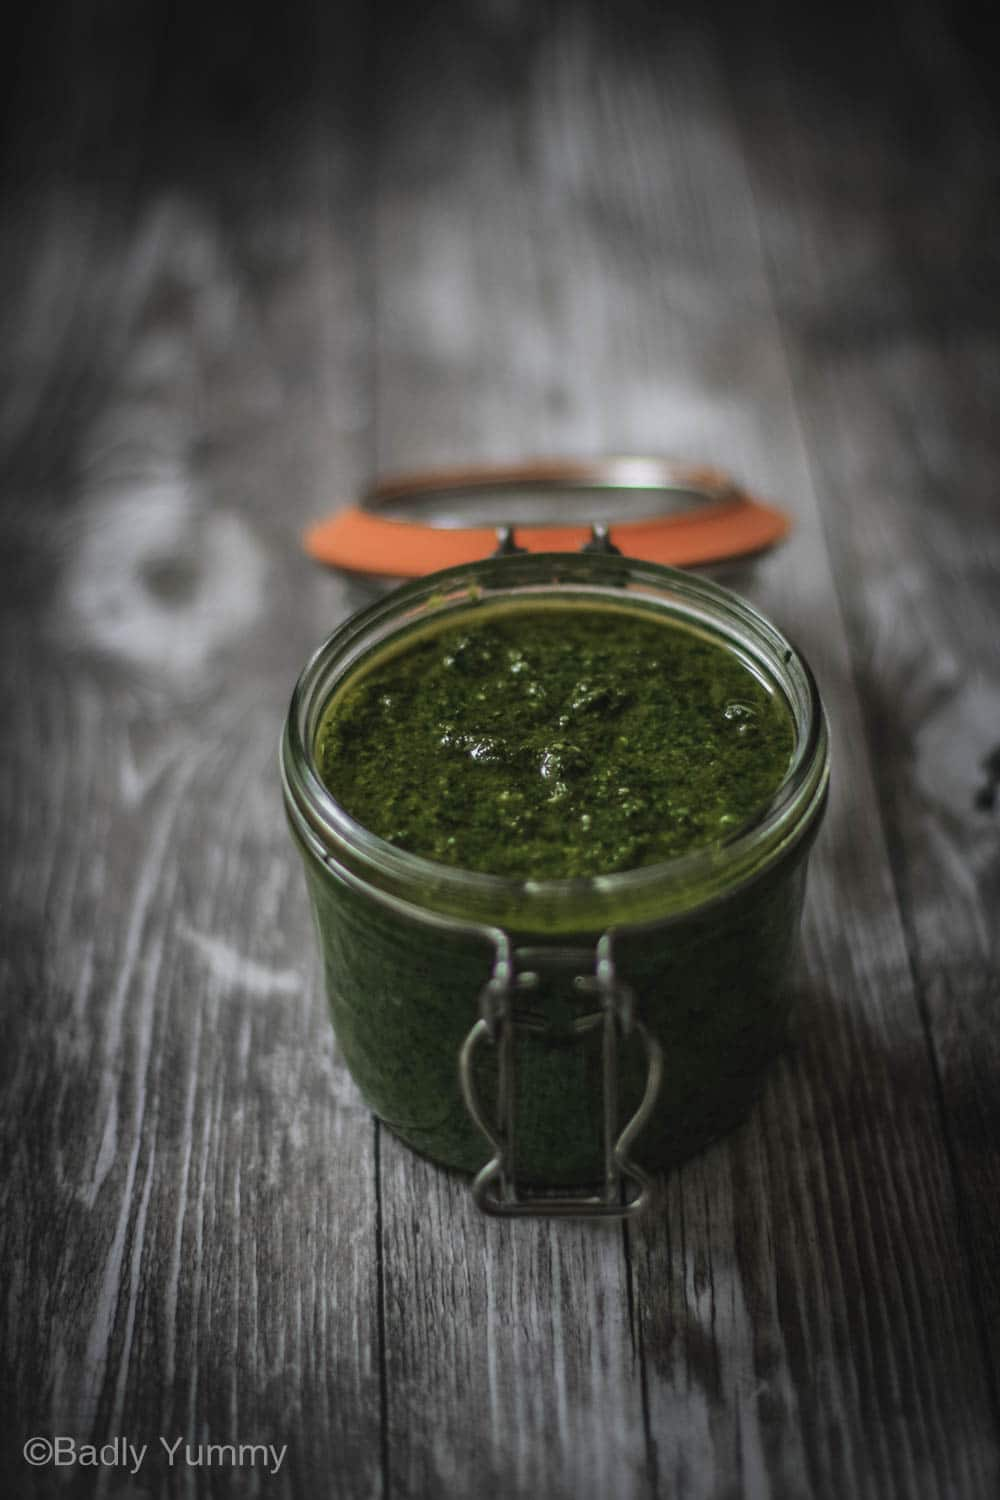 Walnut pesto in a glass jar.